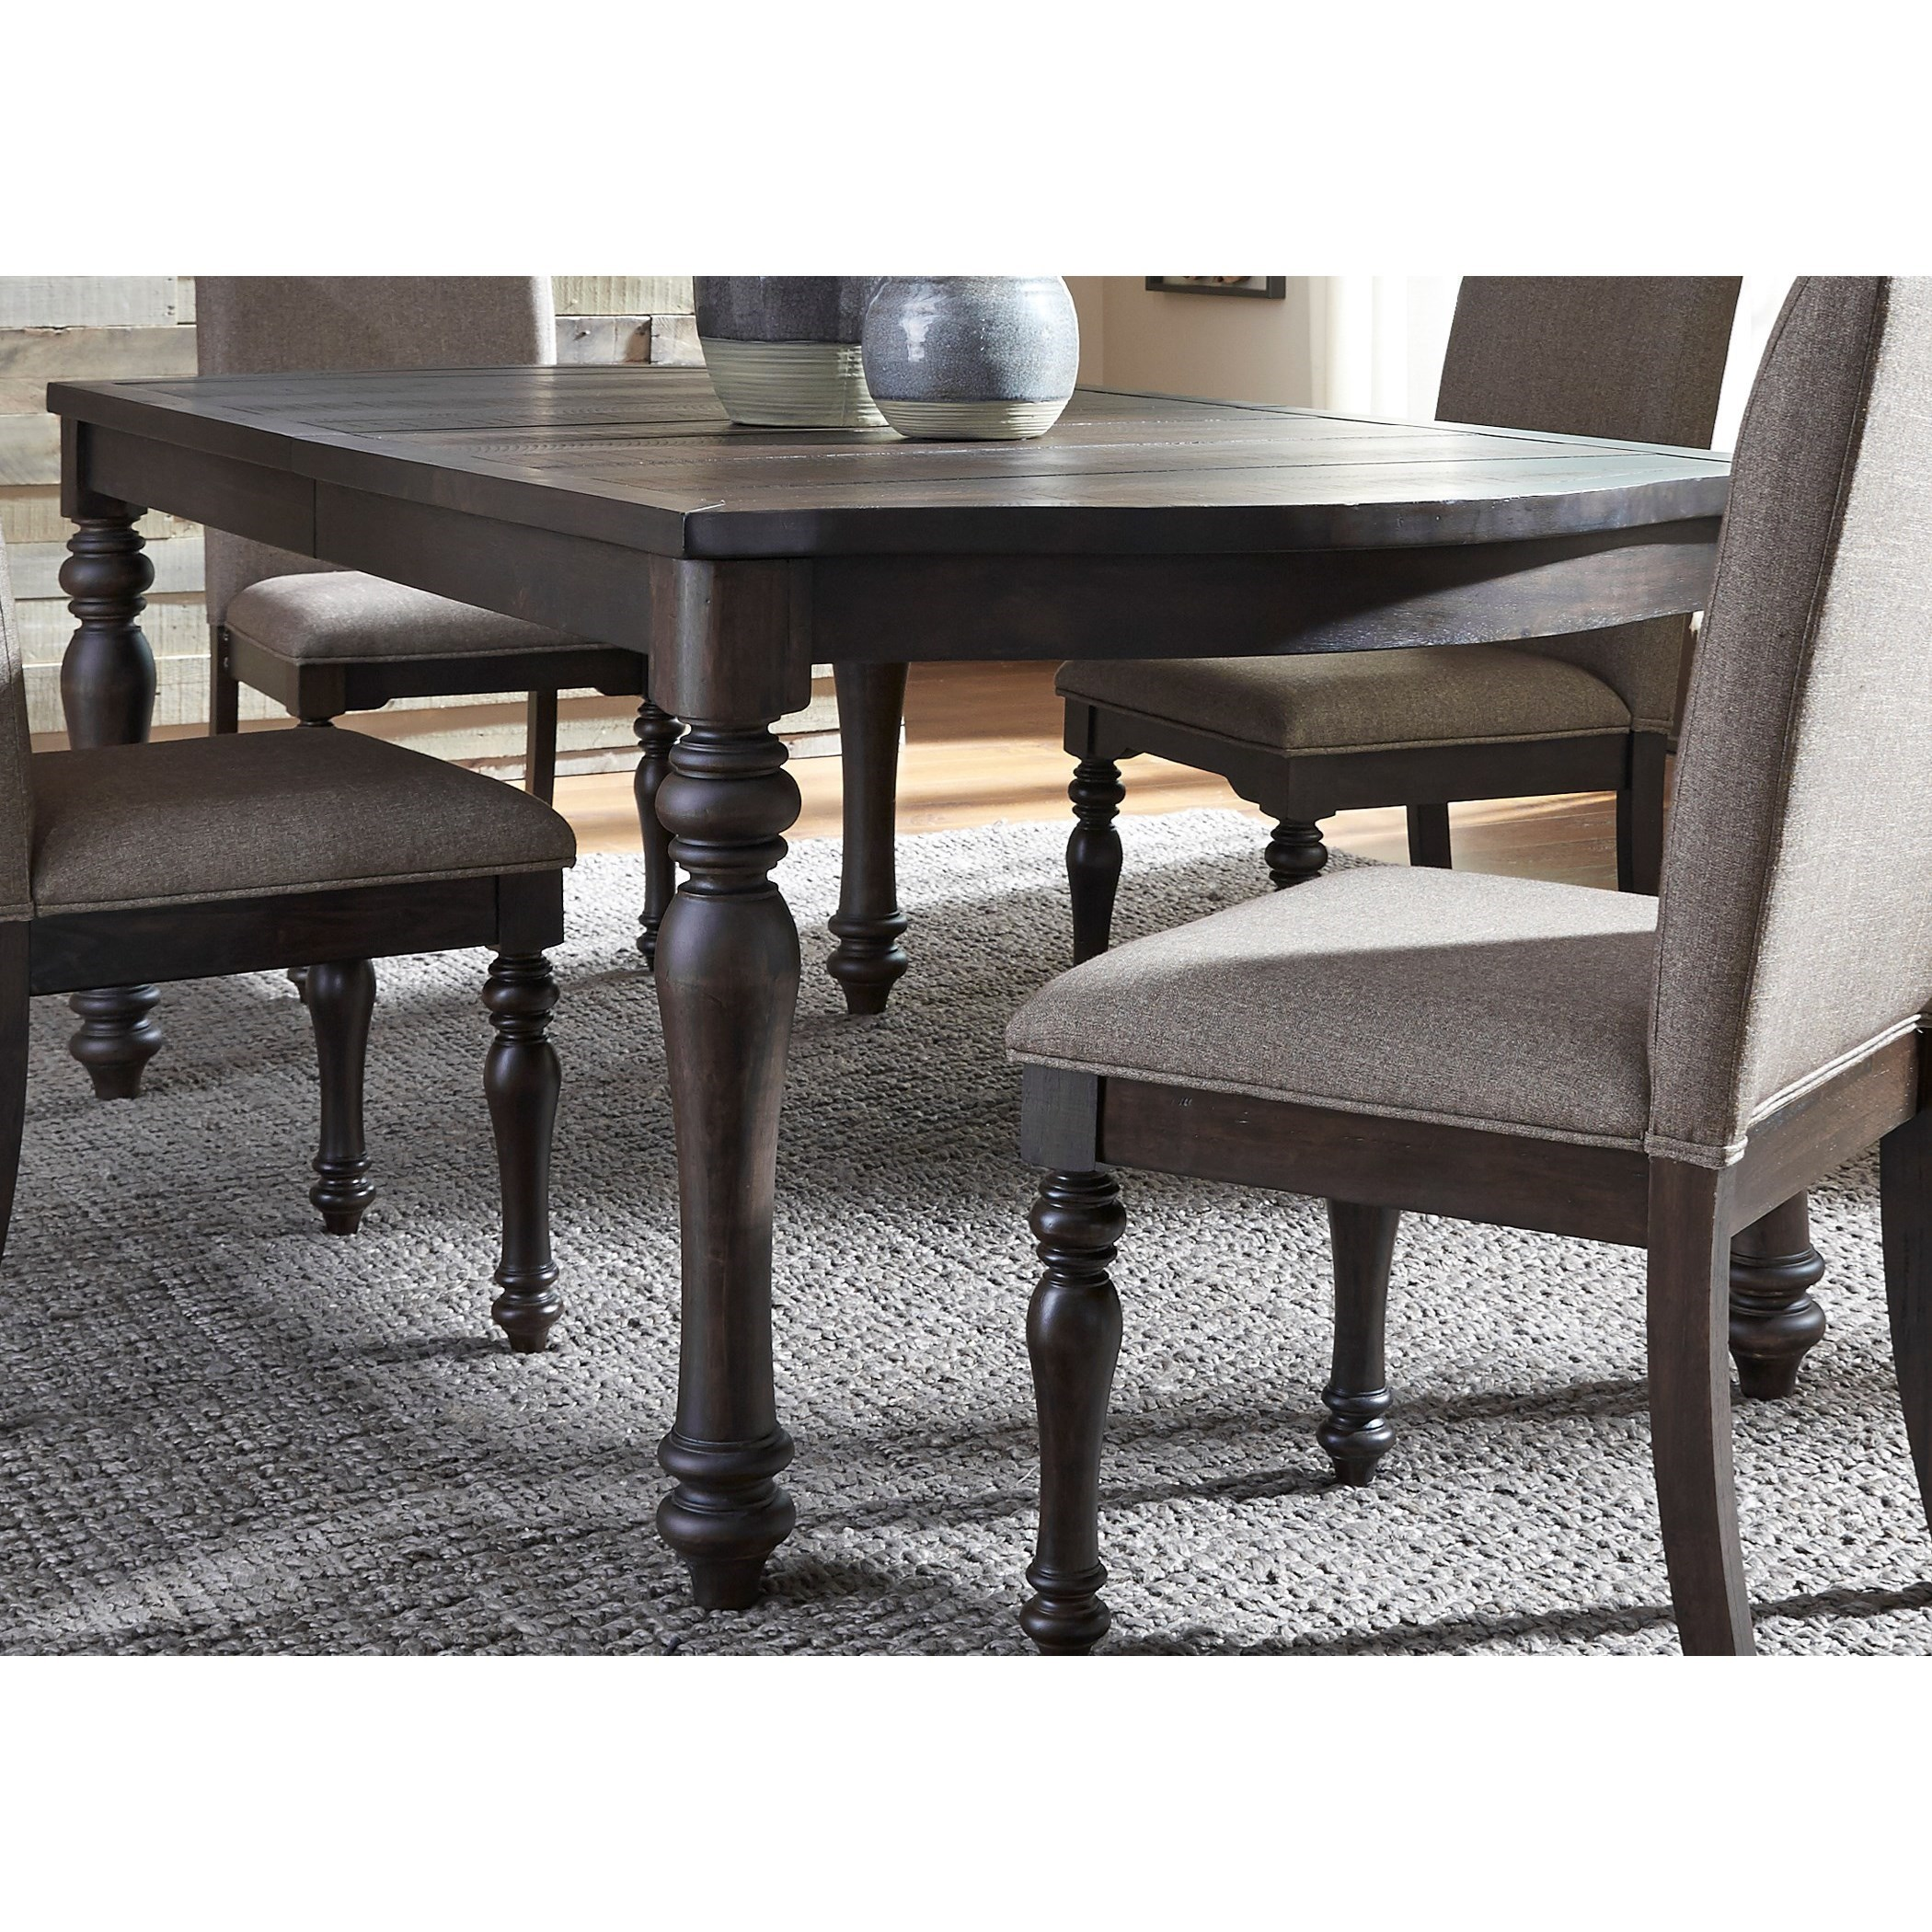 Rectangular Dining Room Tables With Leaves: Catawba Hills Dining Rectangular Leg Table With Leaf